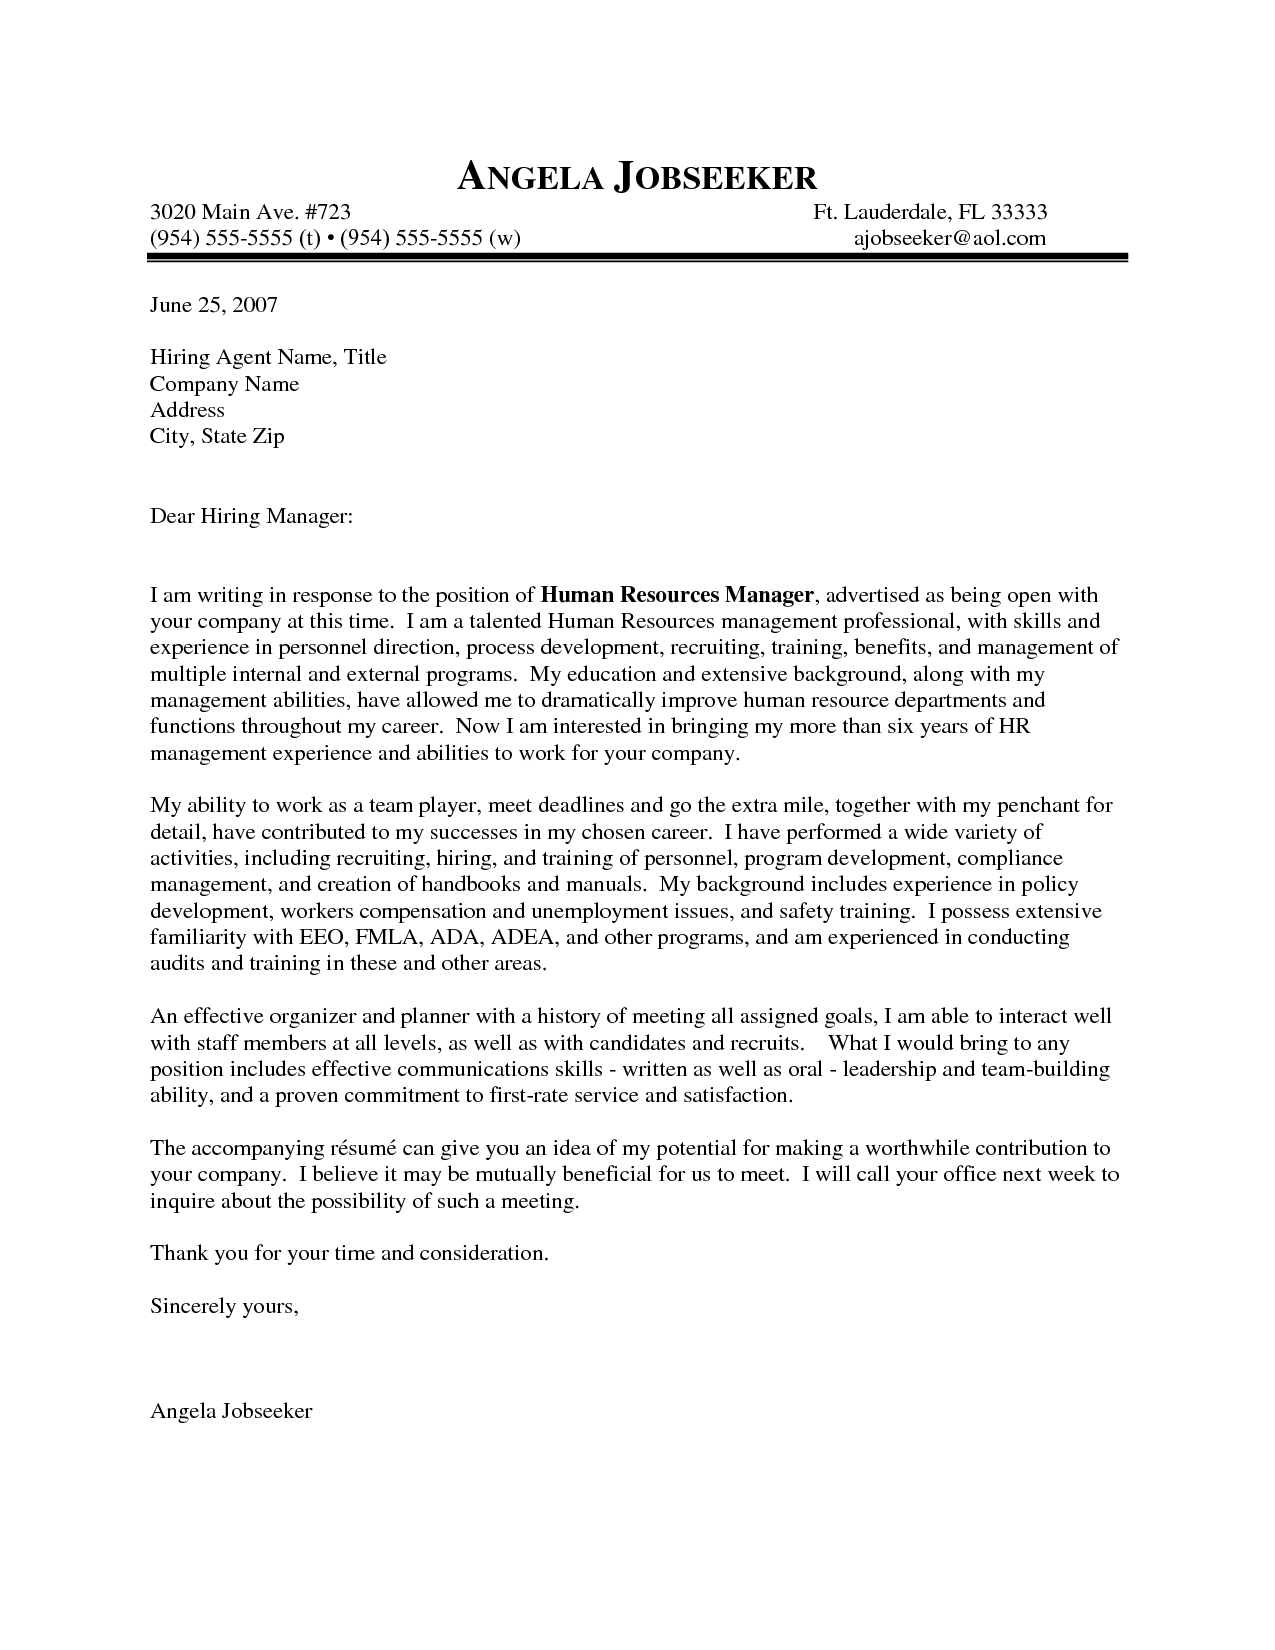 cover letter for human resource coordinator - outstanding cover letter examples hr manager cover